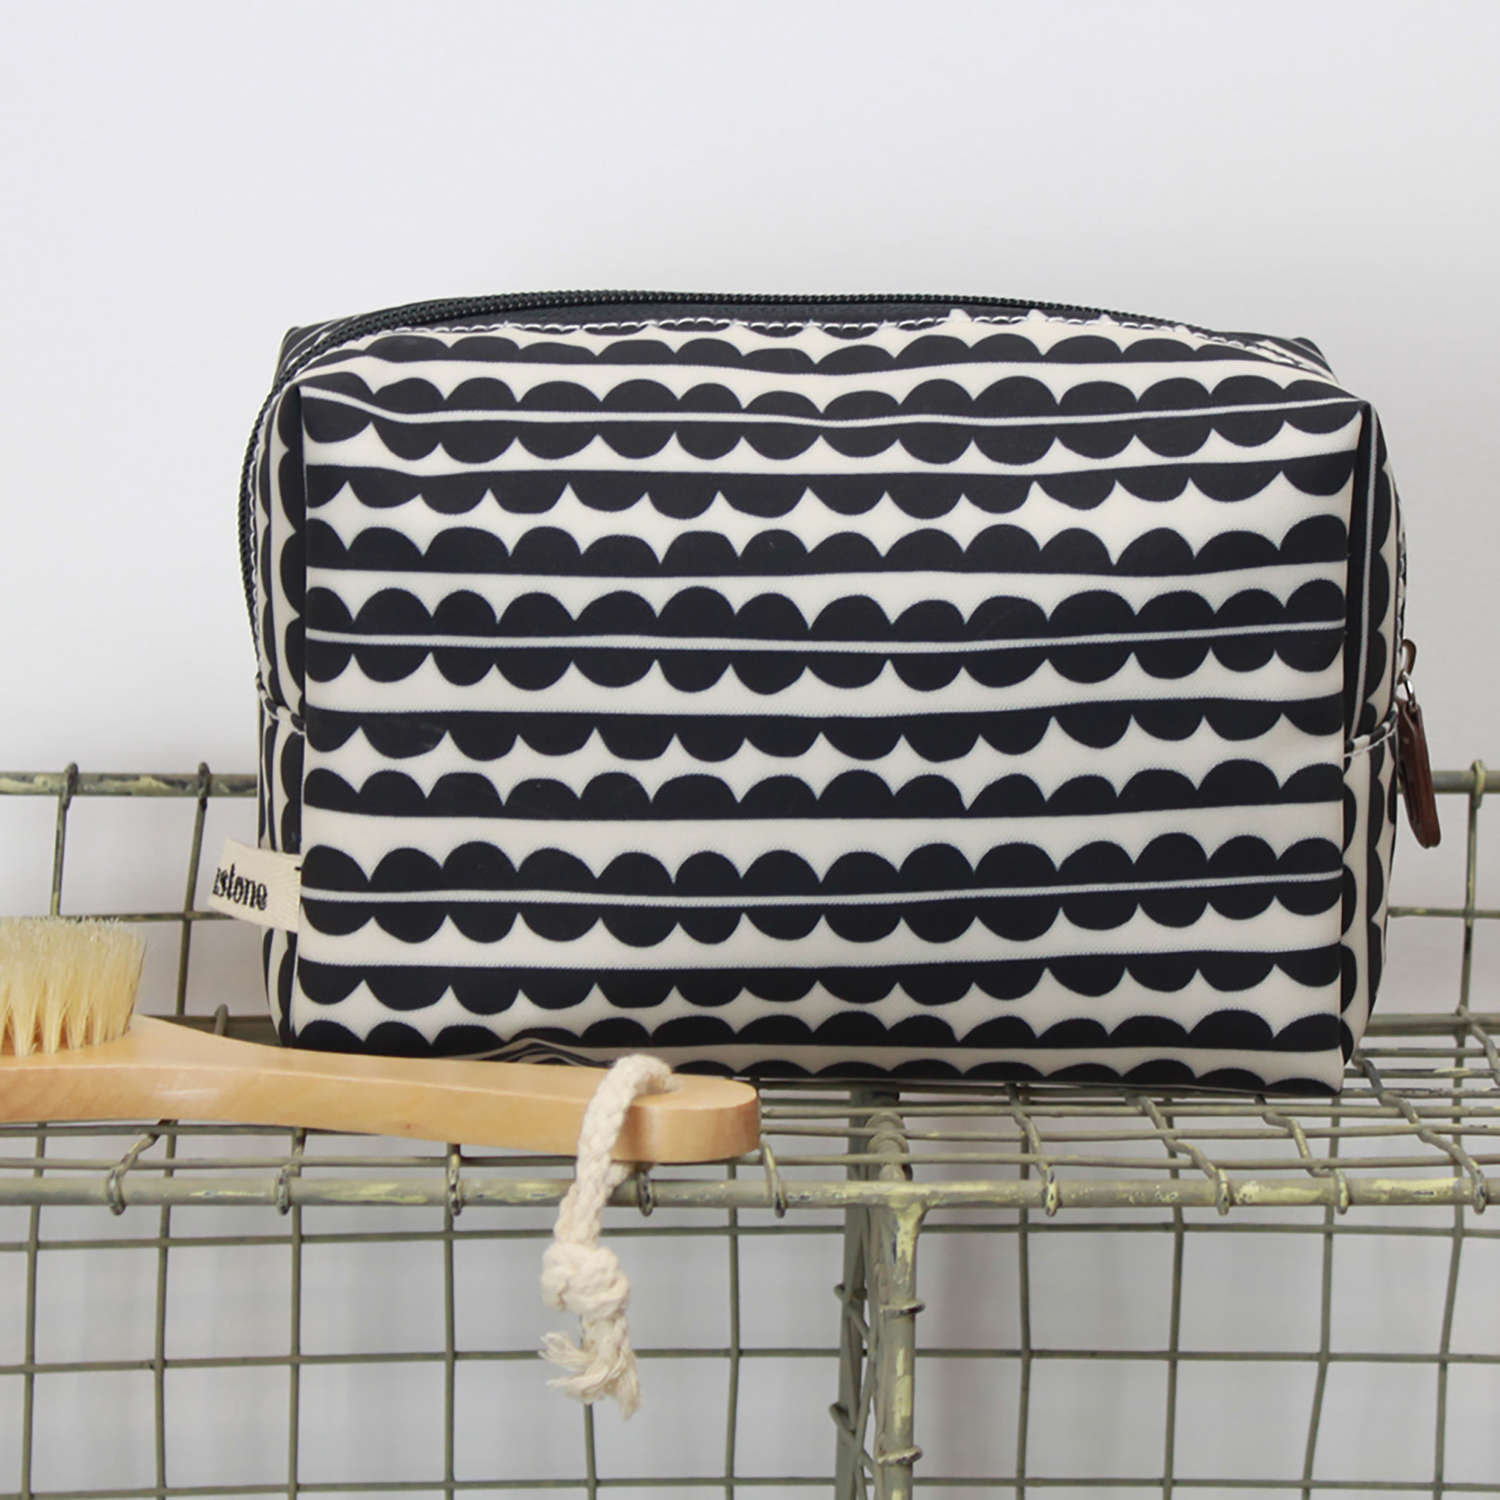 Cosmetic bag scallop